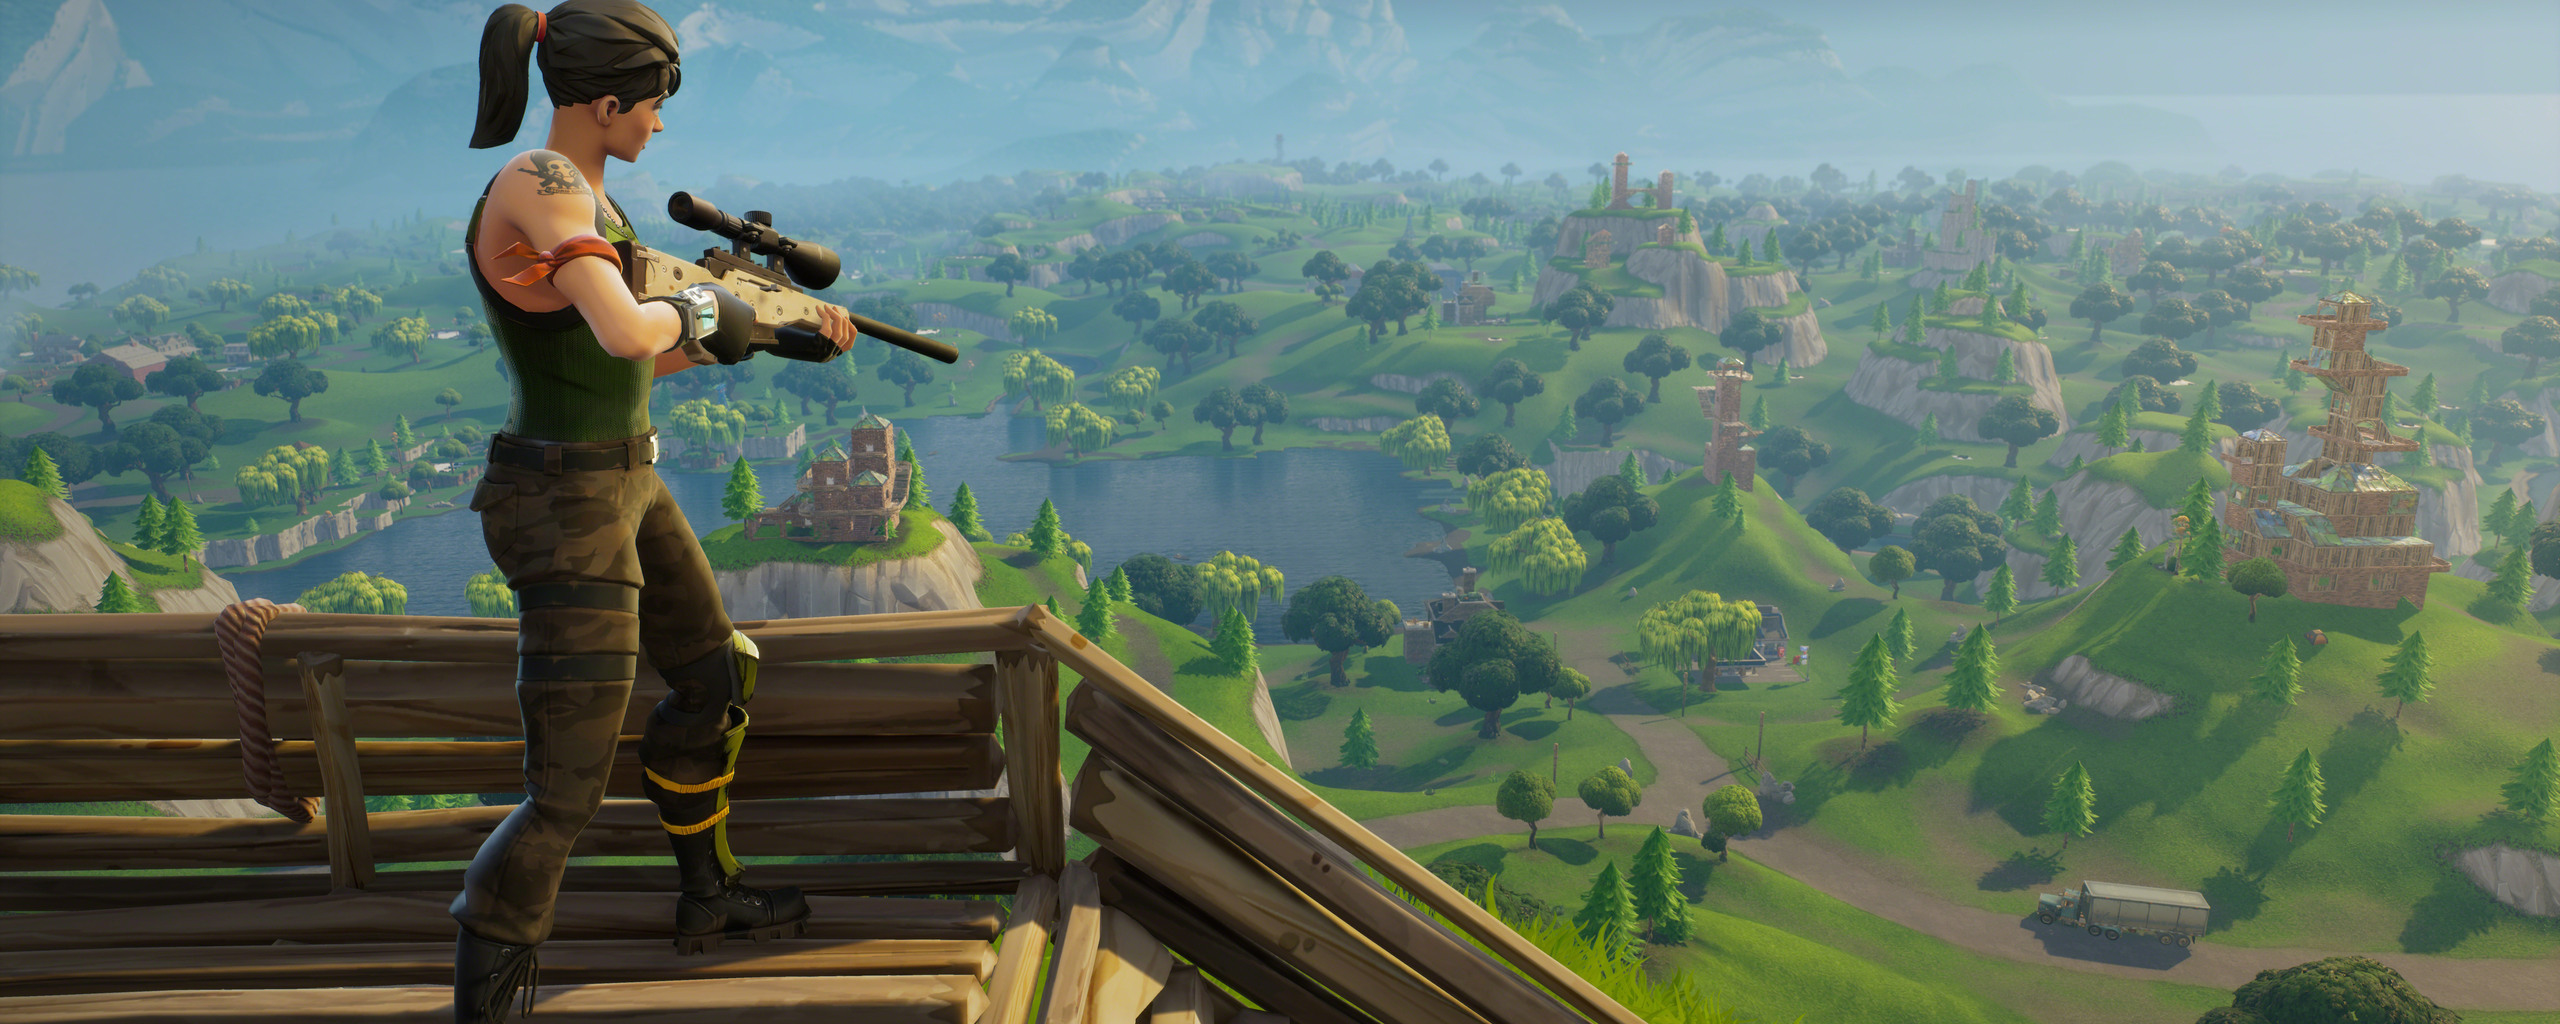 2560x1024 Fortnite Sniper 8k 2560x1024 Resolution HD 4k Wallpapers, Images, Backgrounds, Photos and Pictures